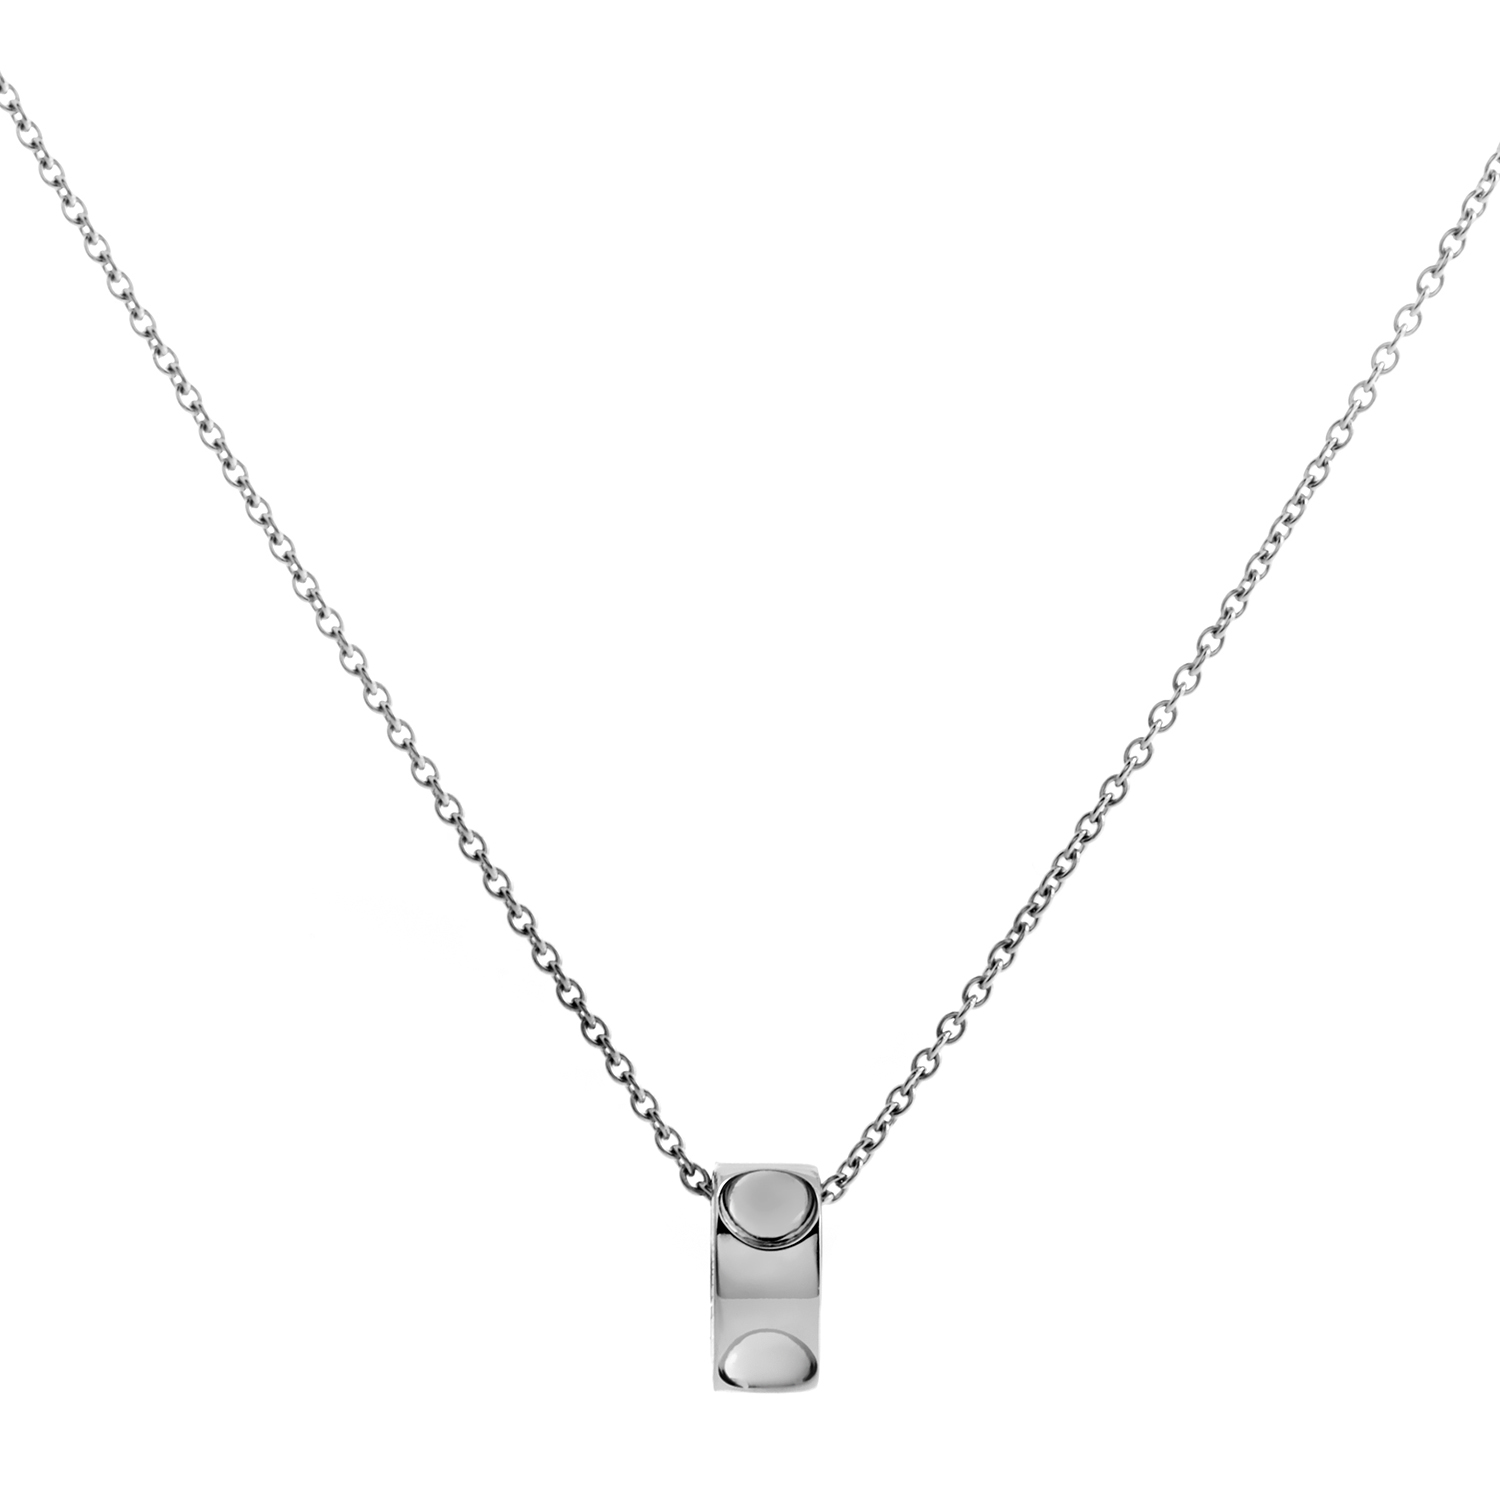 Louis Vuitton Empreinte Women's 18K White Gold Pendant Necklace